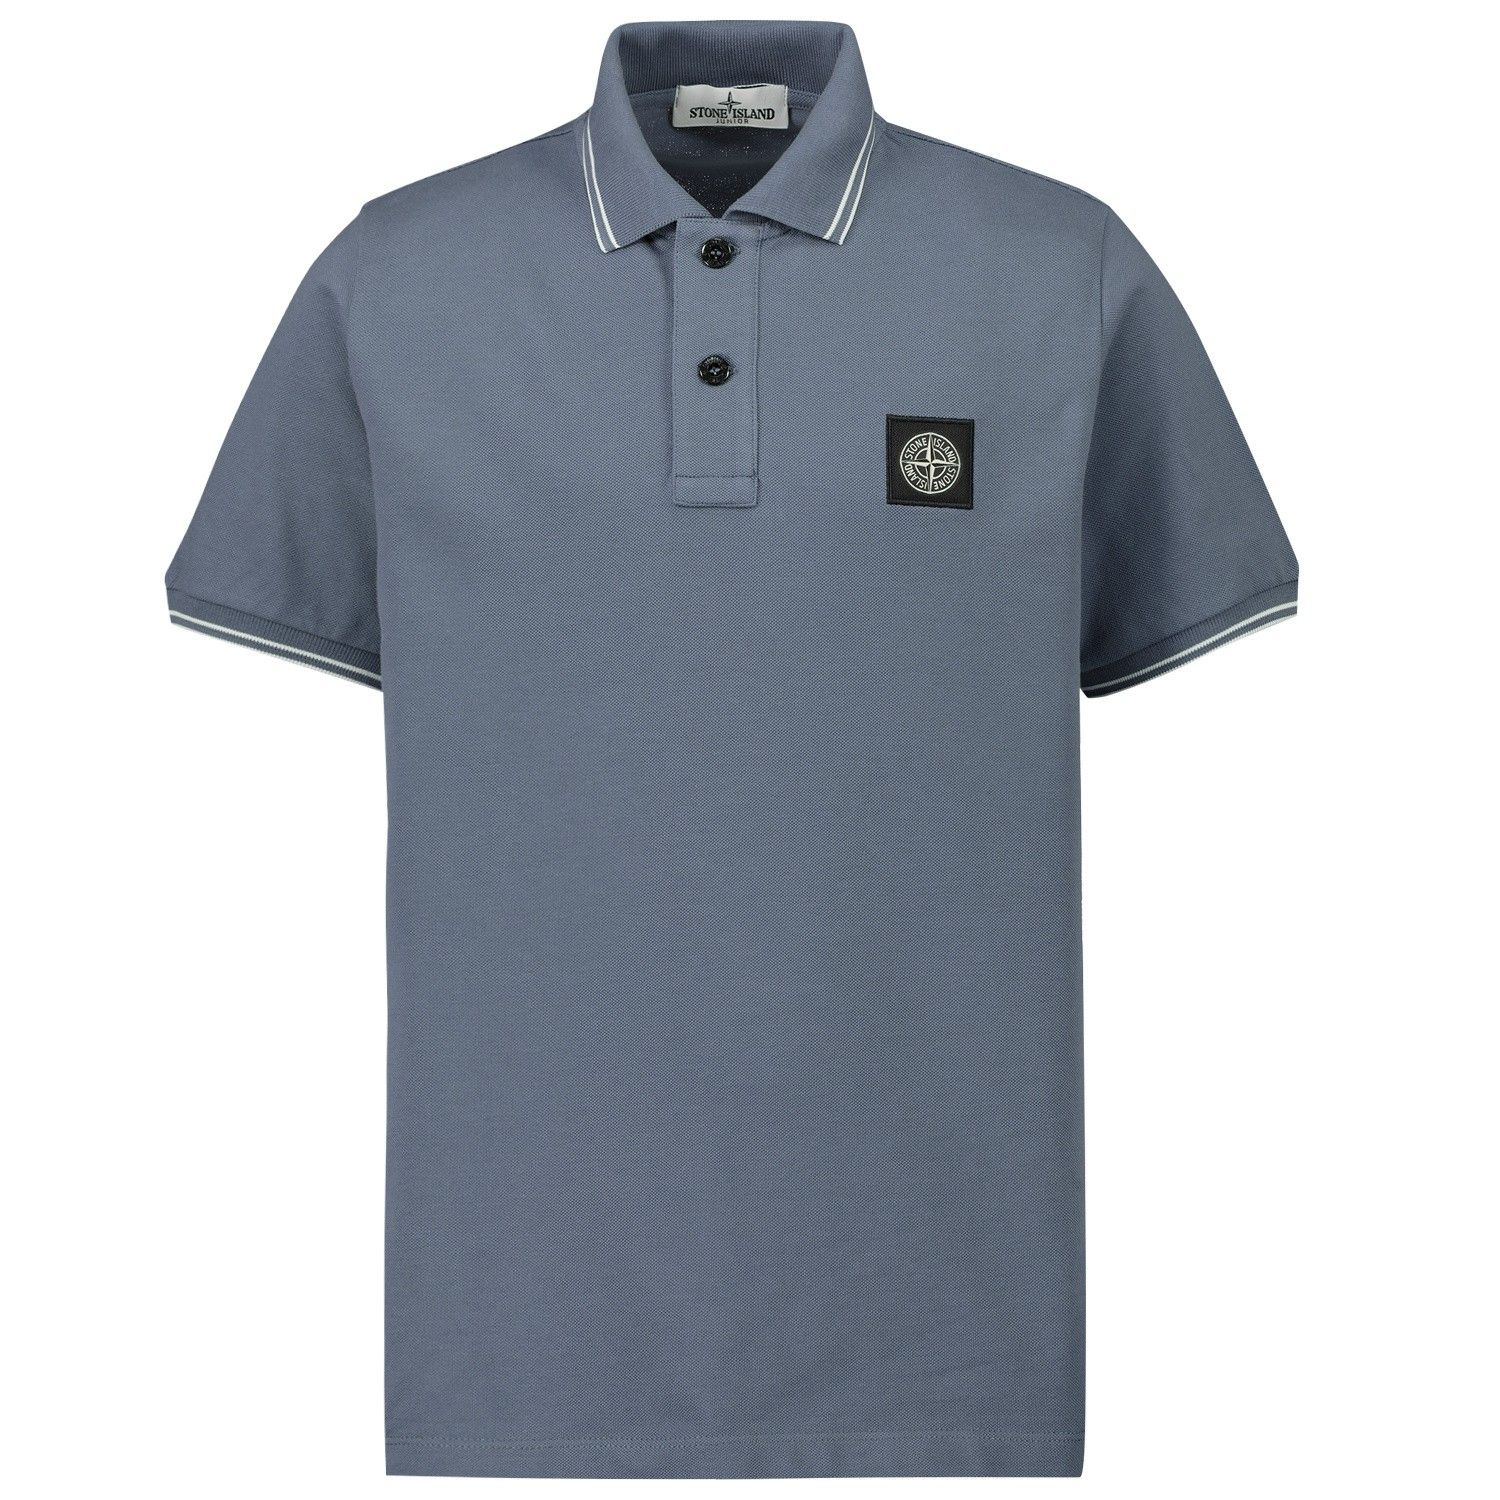 Picture of Stone Island MO731621348 kids polo shirt petrol